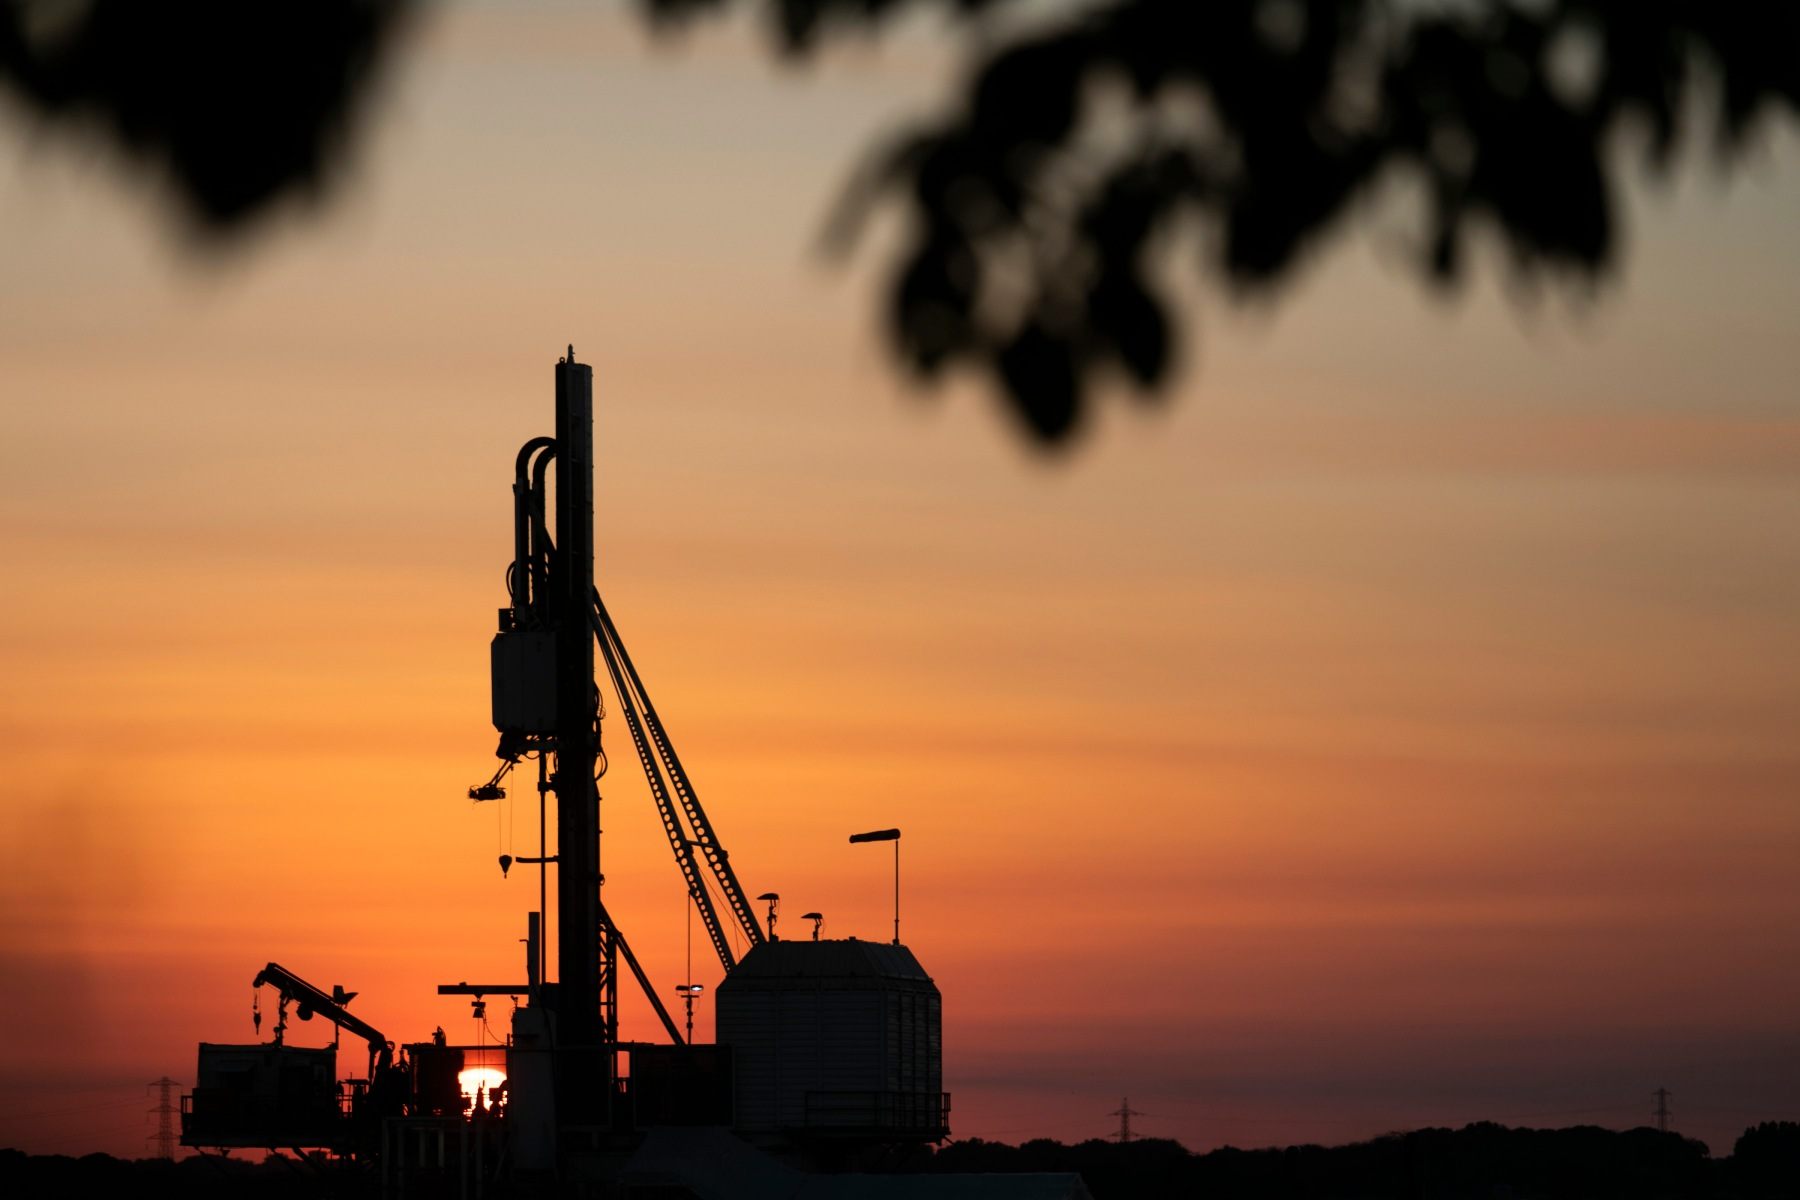 Sunset in New Preston Road, Cuadrilla's highly contested  fracking site in Lancashire. The drilling is almost done and Cuadrilla is almost ready to extract the shale gas. Fracking is a highly controversial way of extracting fossil fuels. (photo by Kristian Buus/In Pictures via Getty Images)